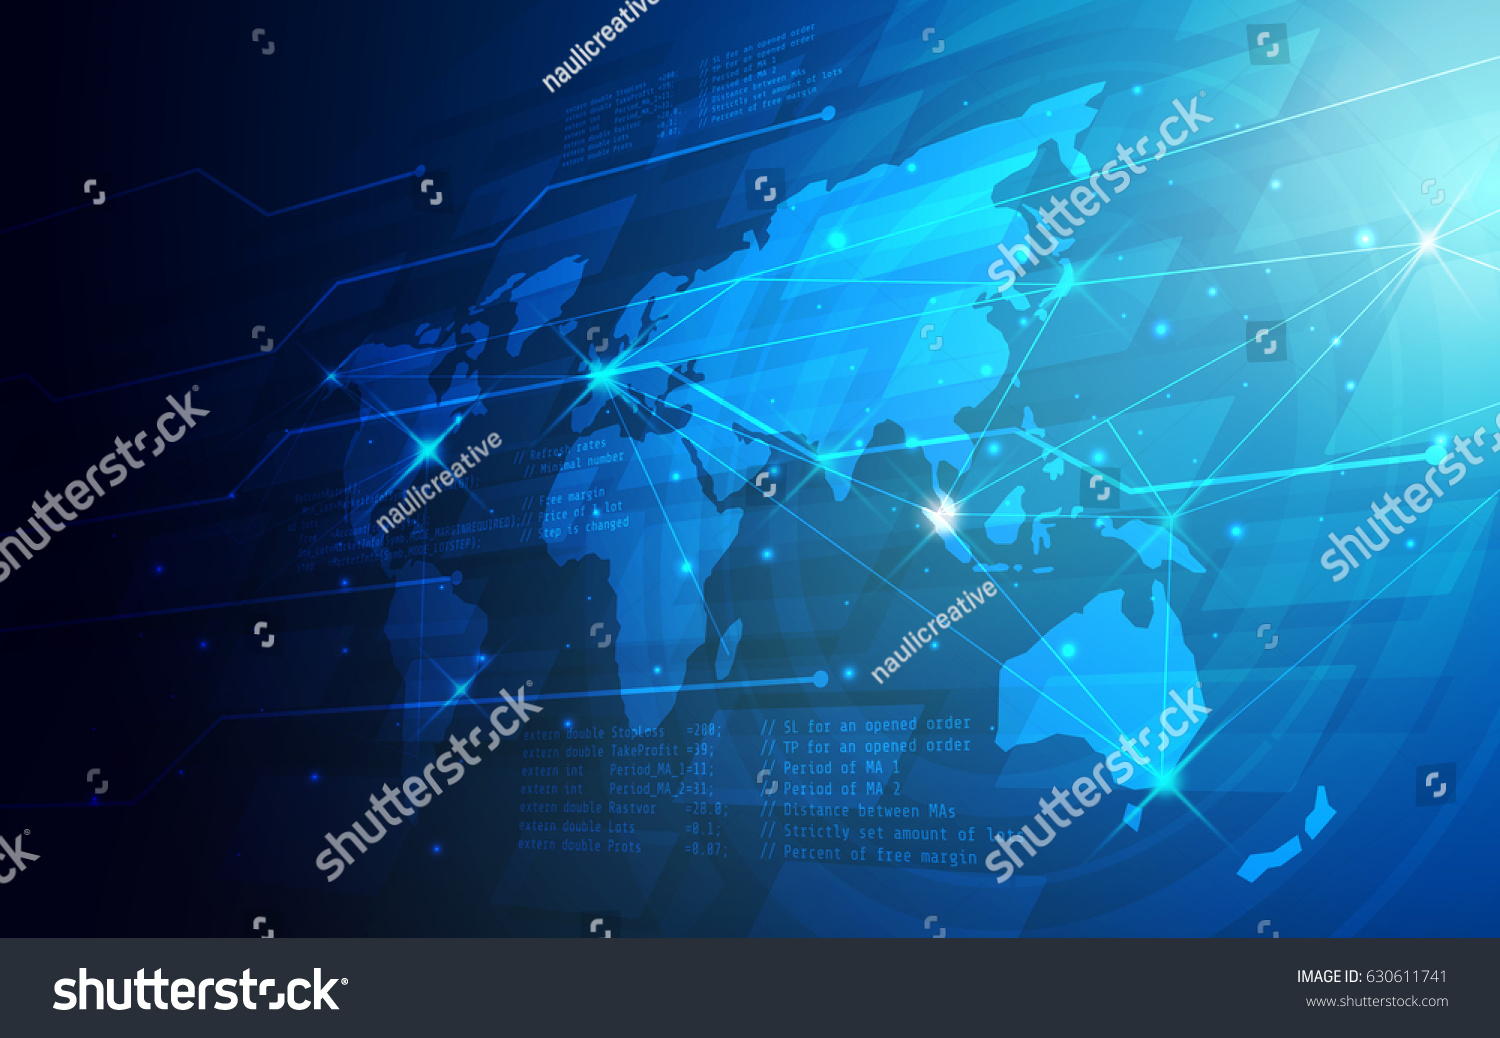 Ultra Hd Abstract World Map Technology Image Vectorielle De Stock - Printable Map Banner